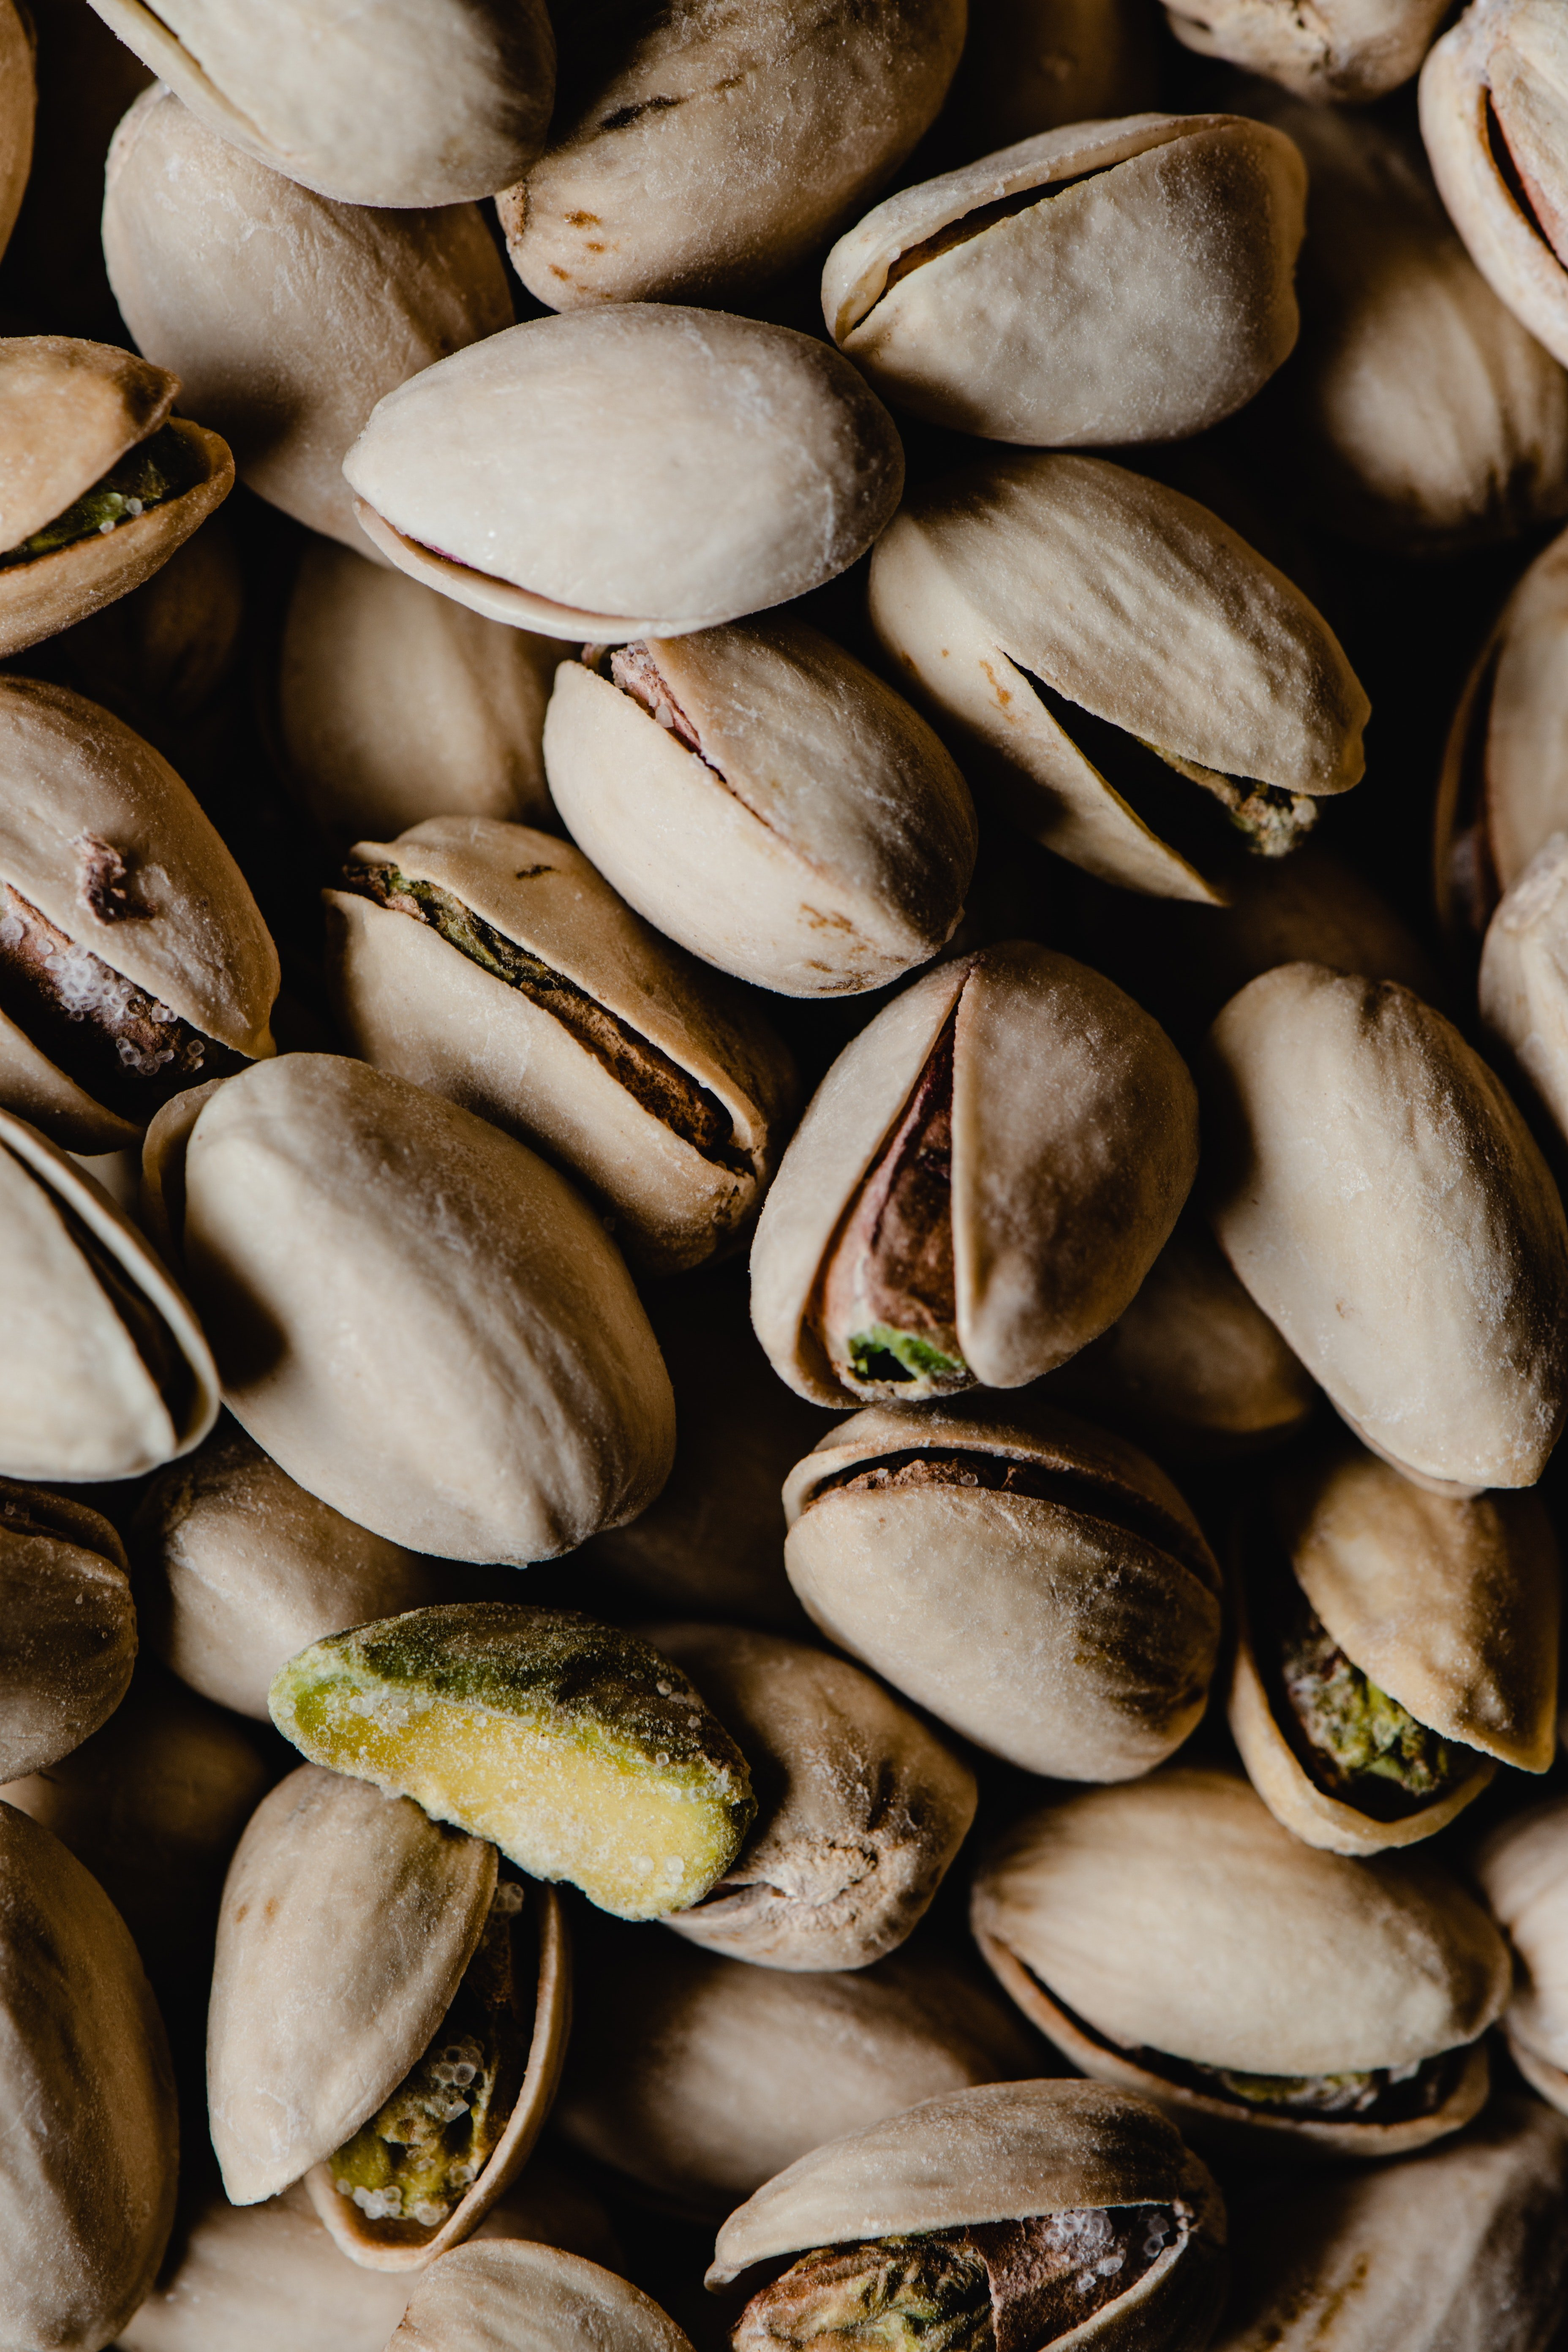 Pictured - A photograph of brown Pistachios | Source: Pexels